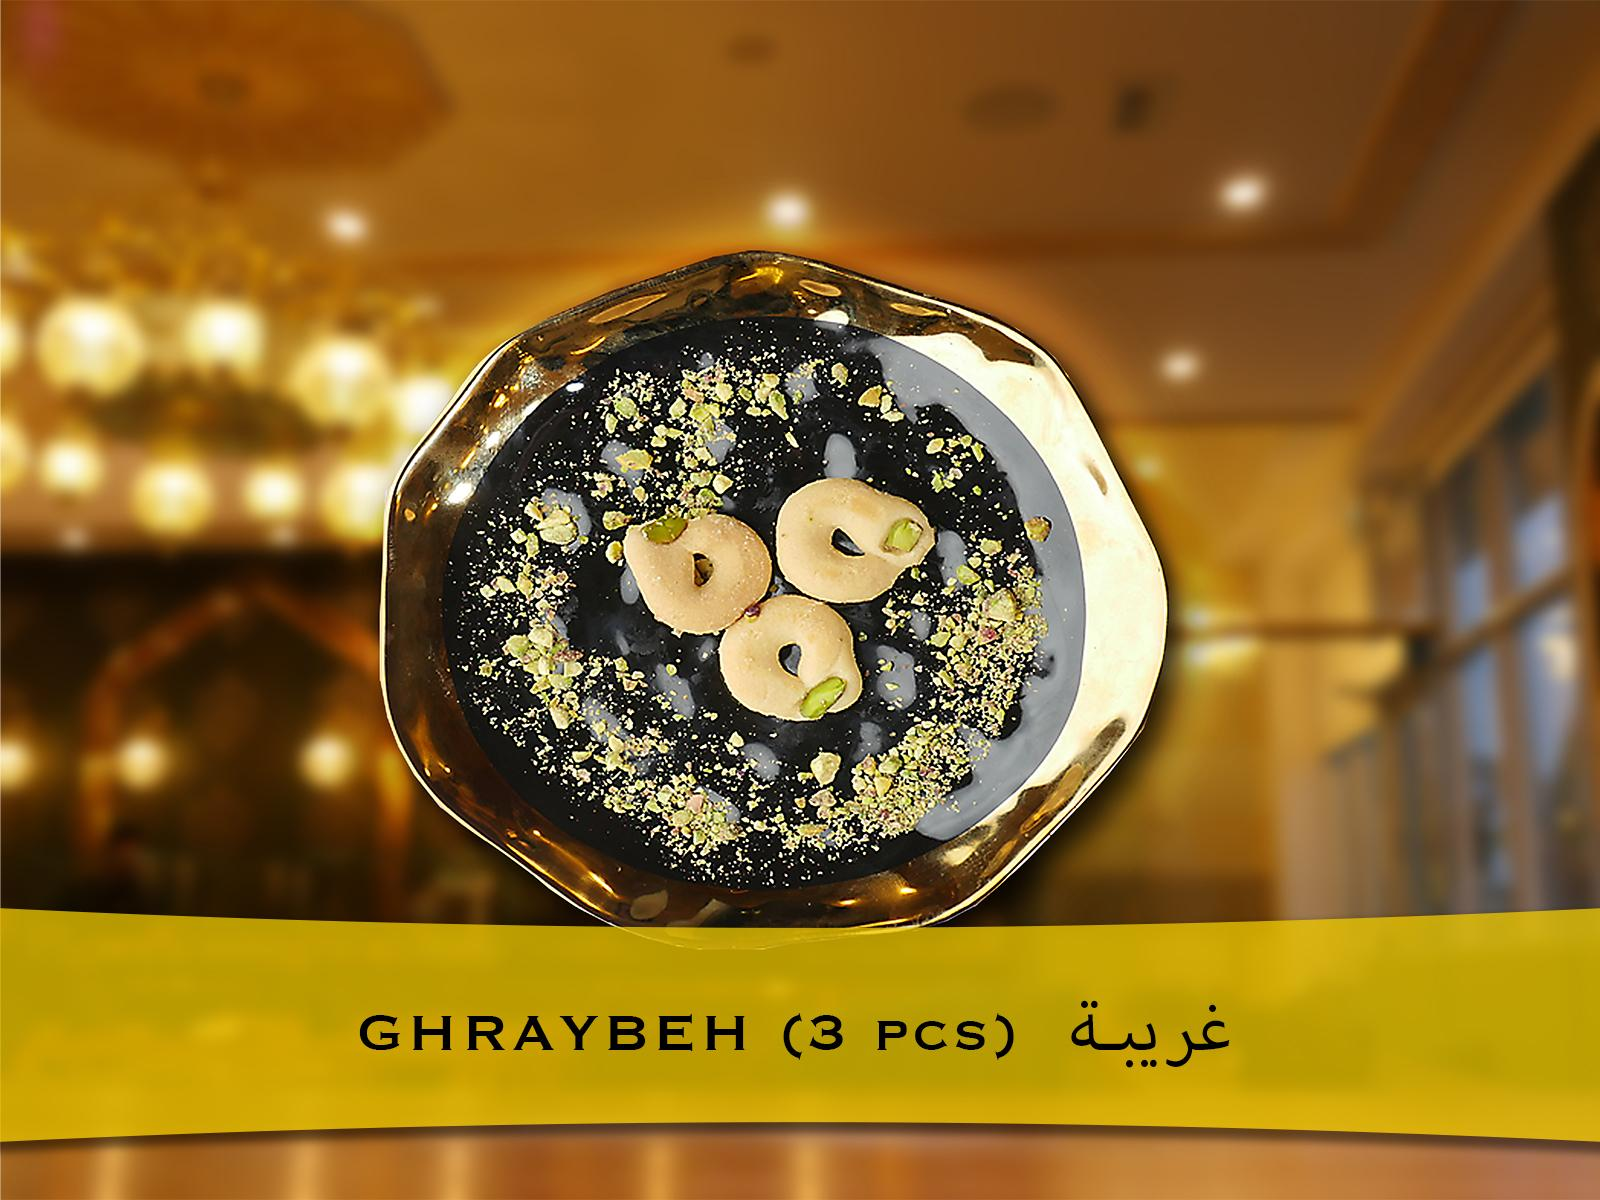 Ghraybeh (3 pcs) Image